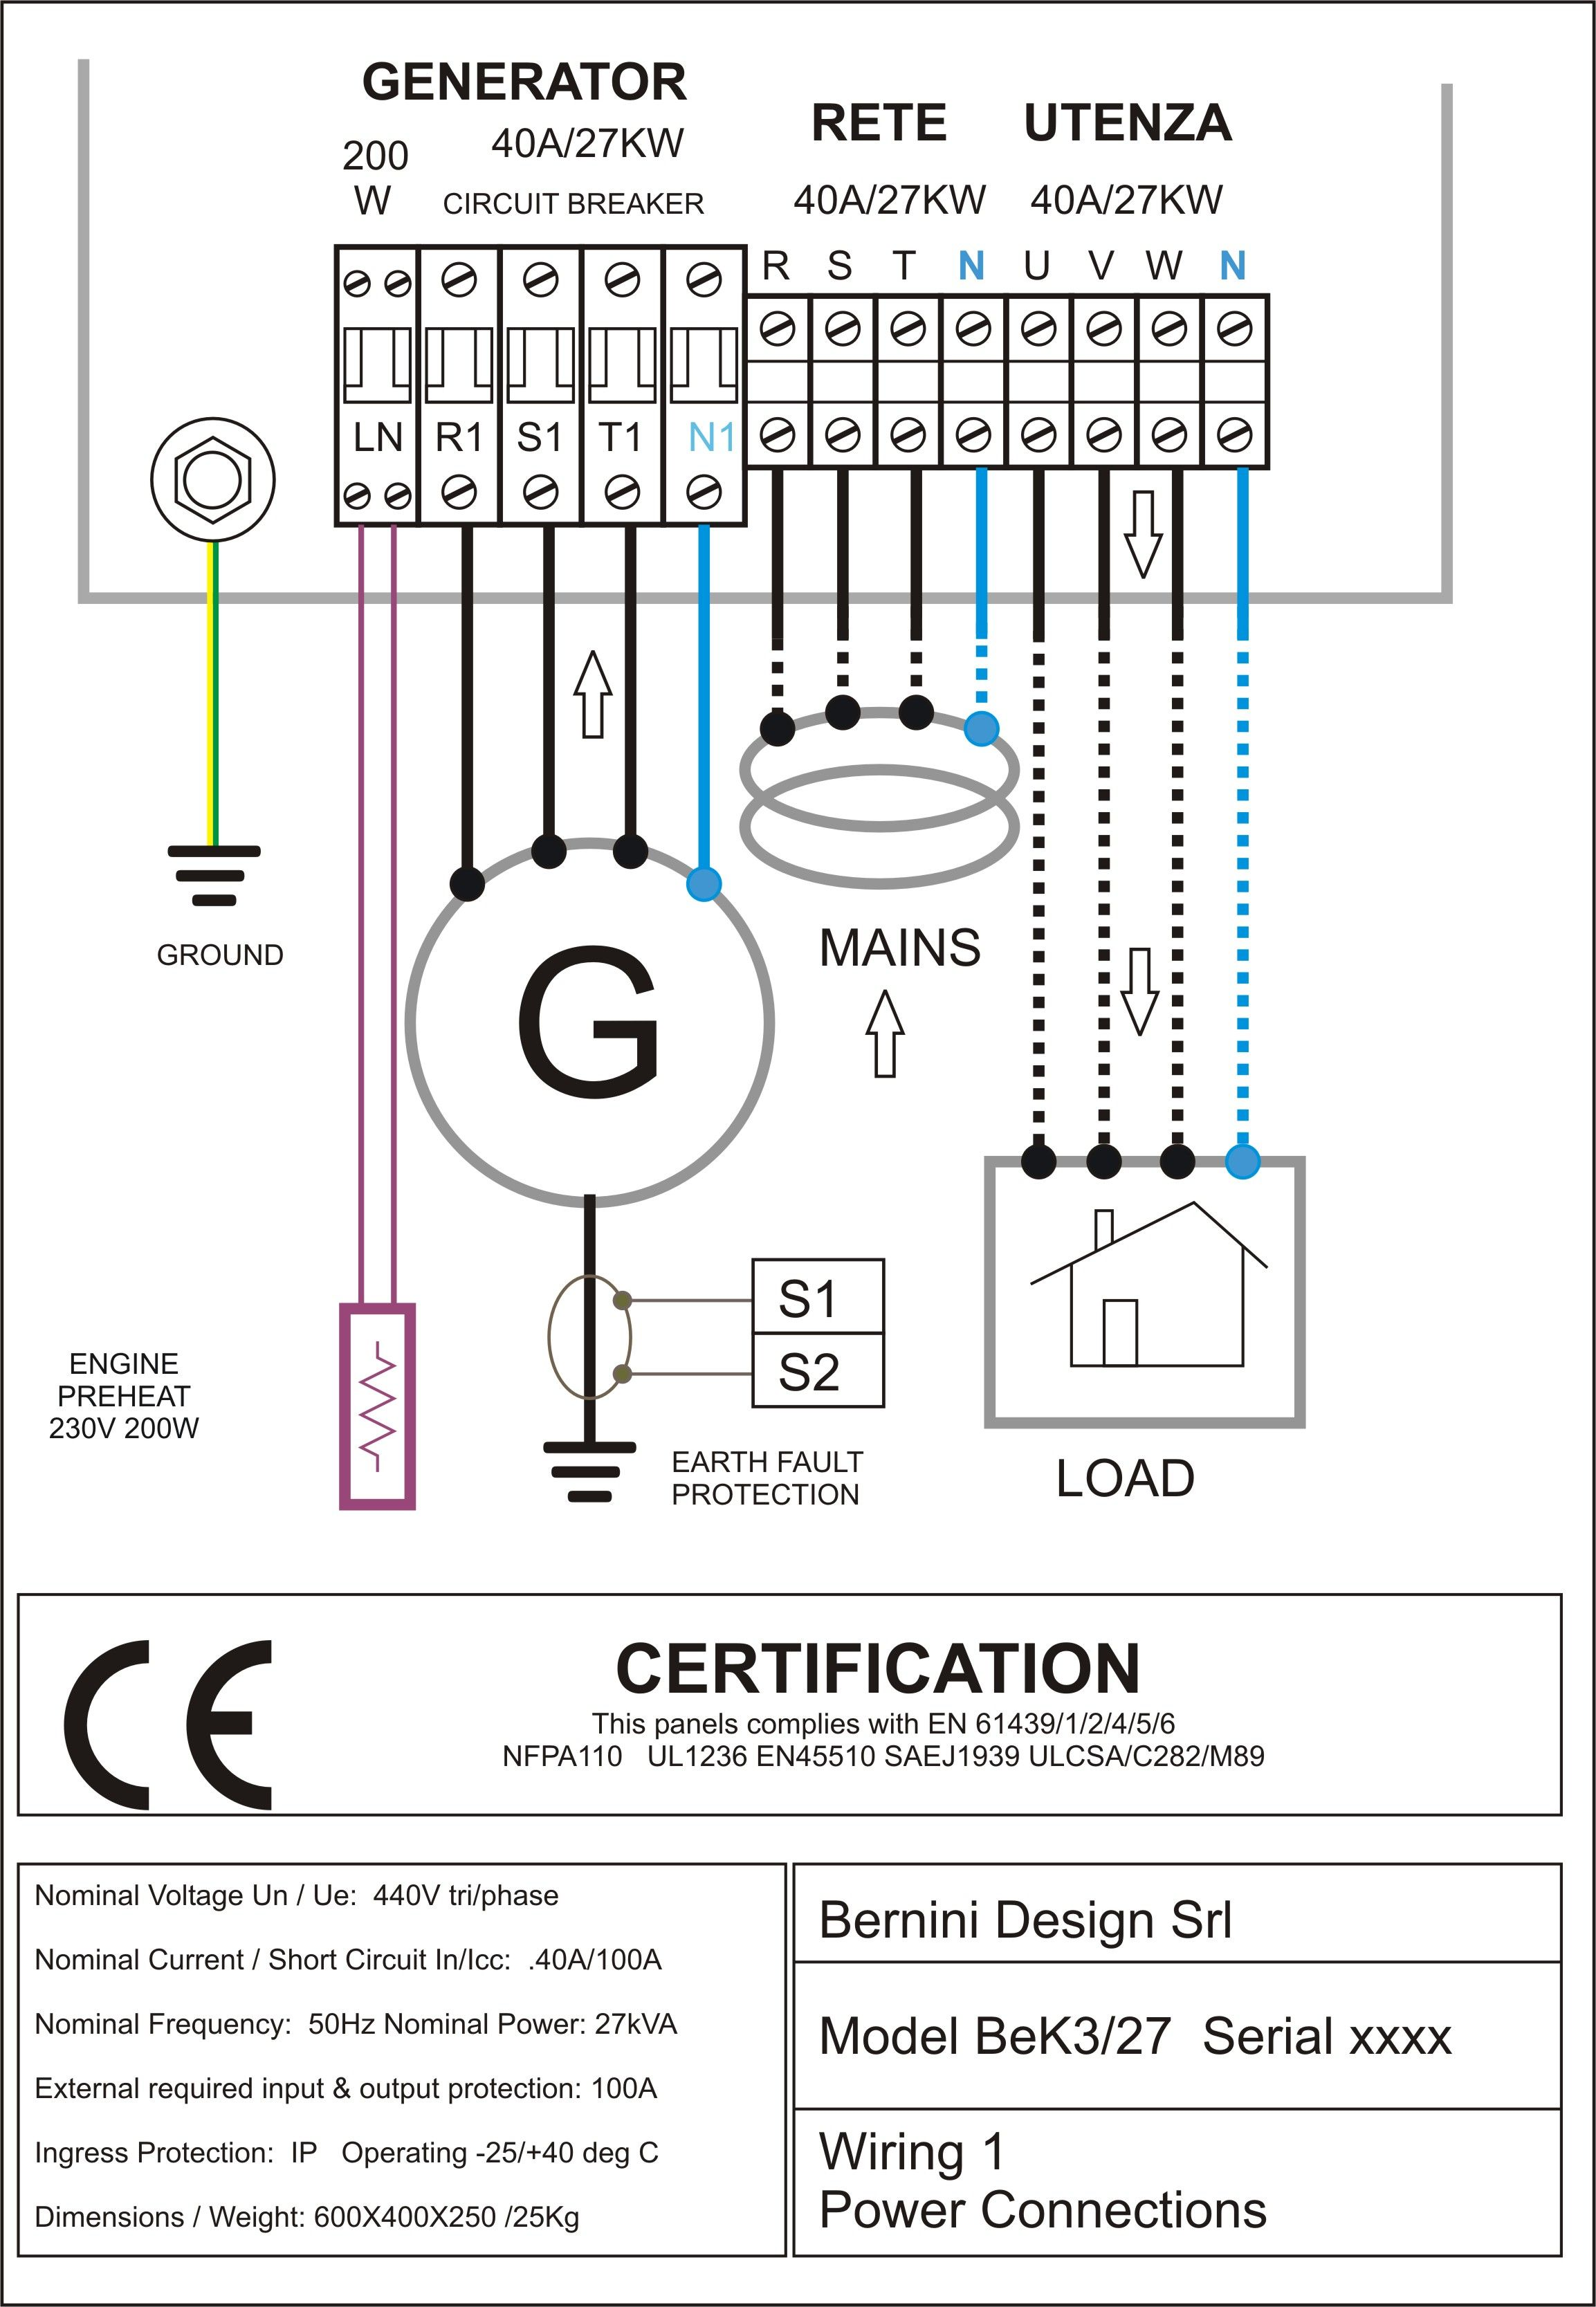 ac control wiring diagram simple wiring diagram site williamson ac wiring diagram ac control unit wiring [ 2307 x 3335 Pixel ]